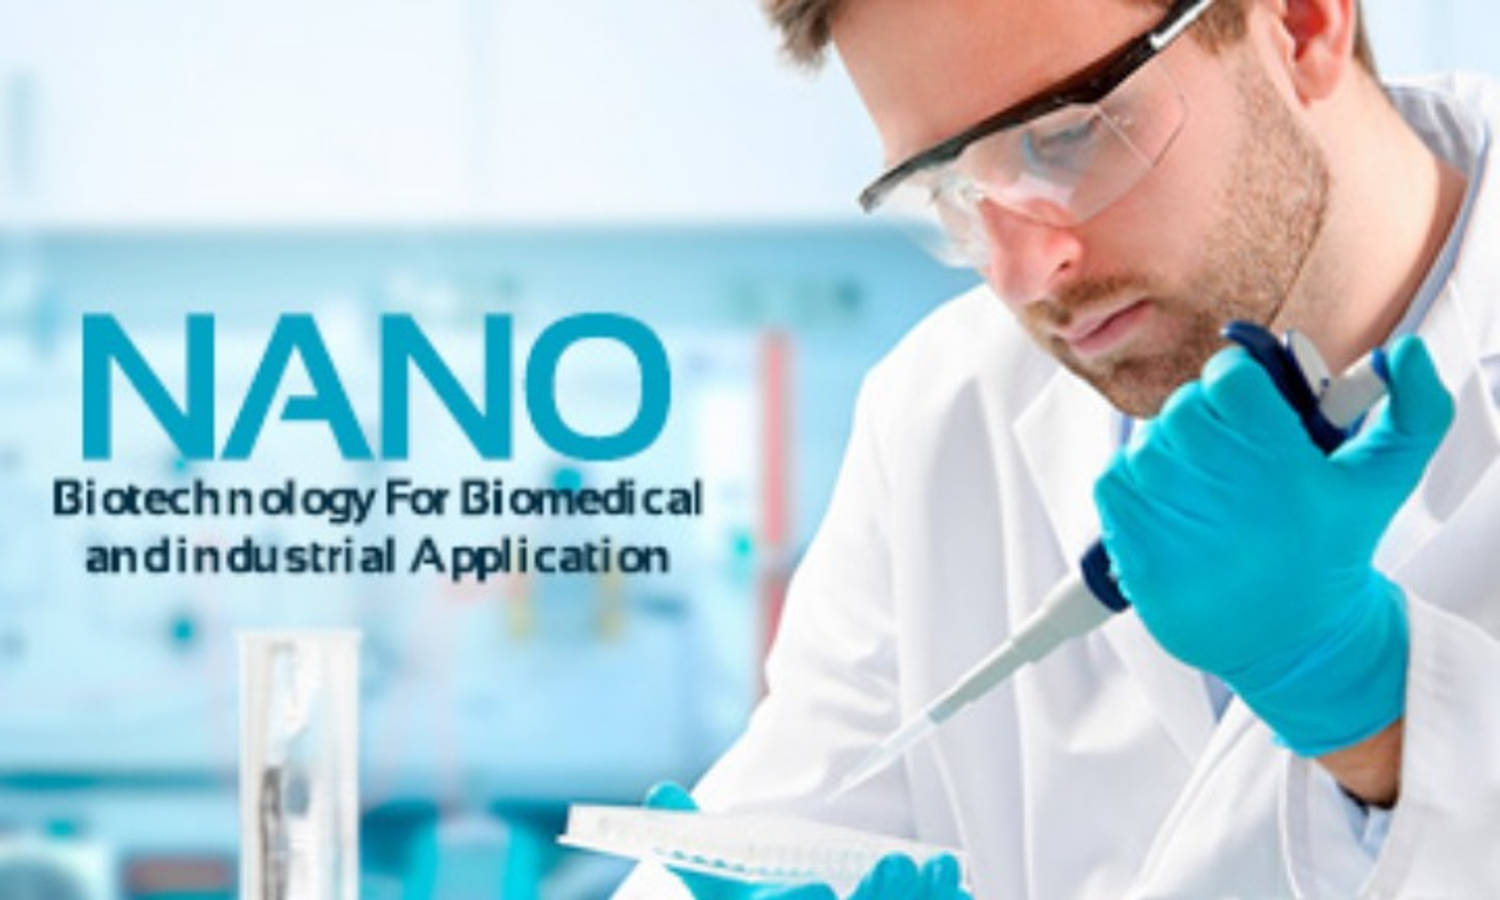 Nano-Biotechnology For Biomedical and Industrial Application